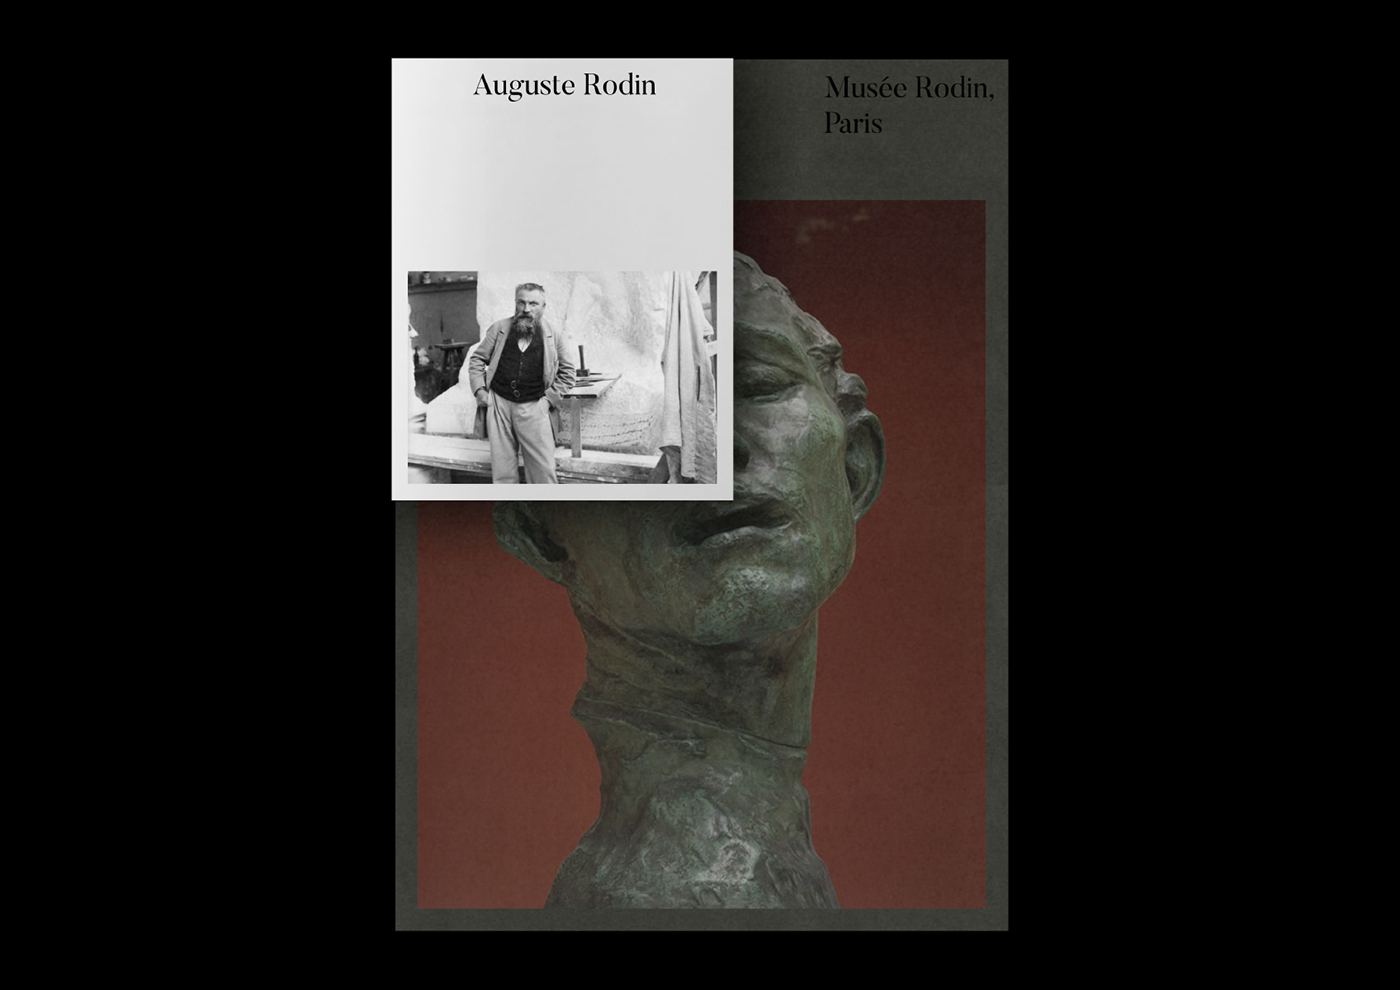 life timeline of auguste rodin essay Sculptor auguste rodin descriptive essay by hazelmae sculptor auguste rodin this paper describes the life and work of french artist auguste rodin, know especially for his sculpture.